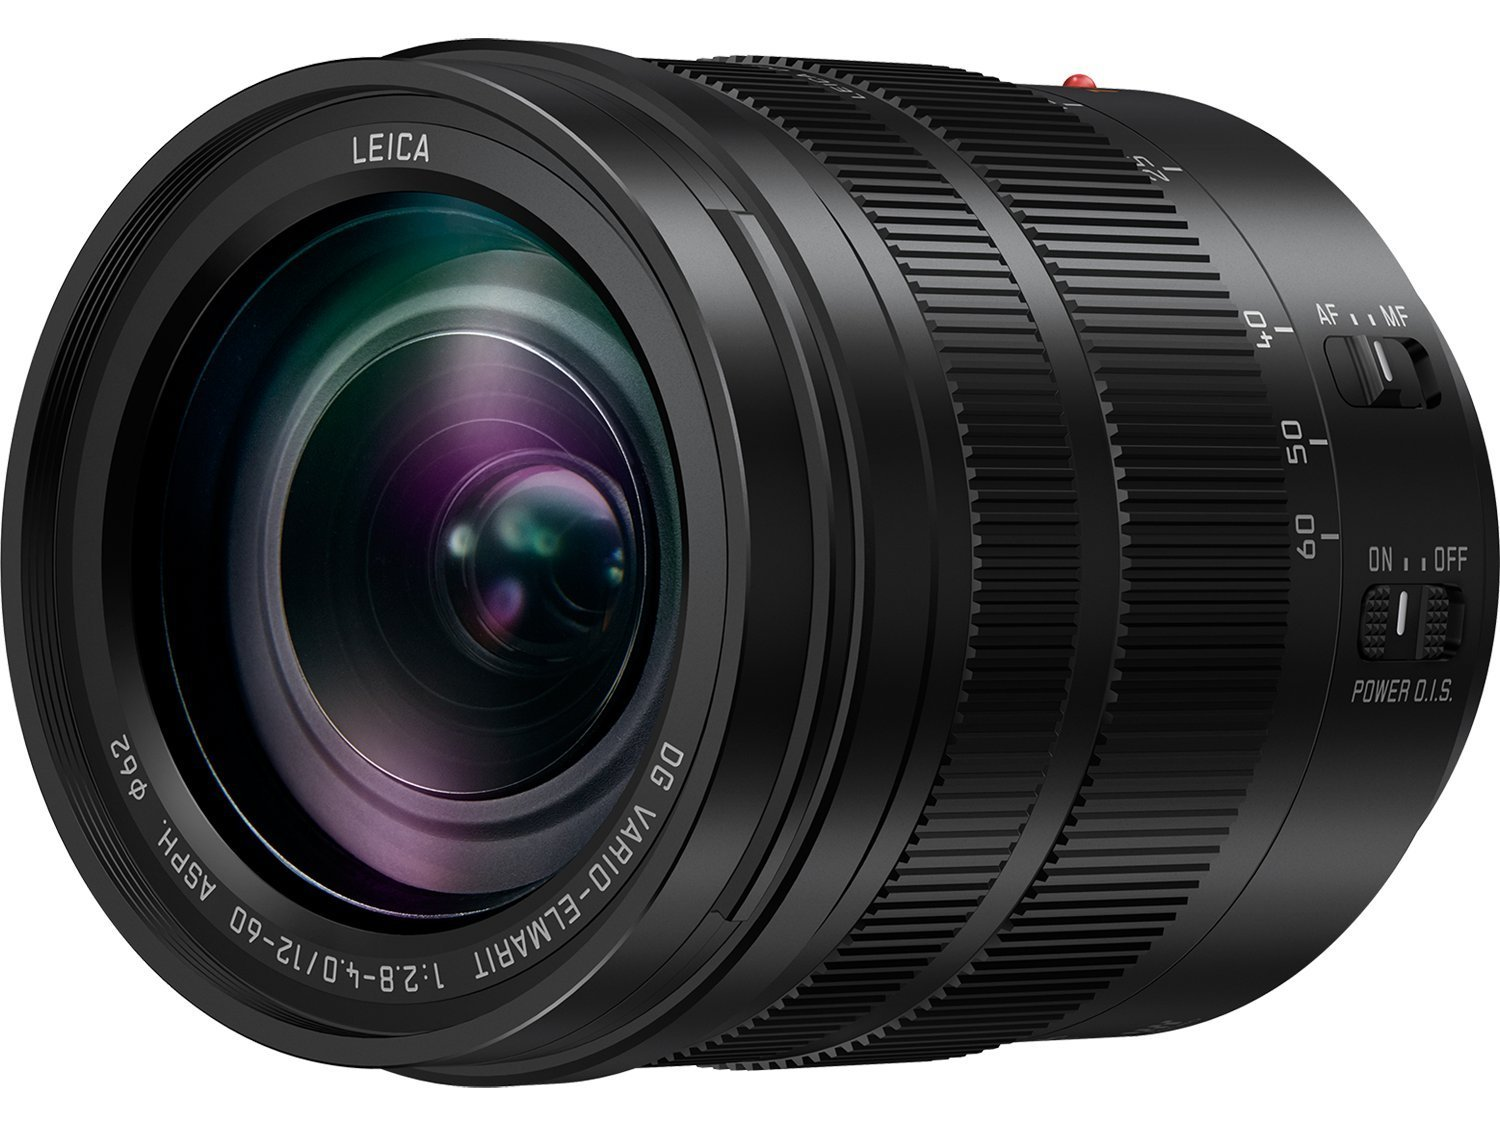 Panasonic Leica 12-60mm Lens Firmware Update V1.1